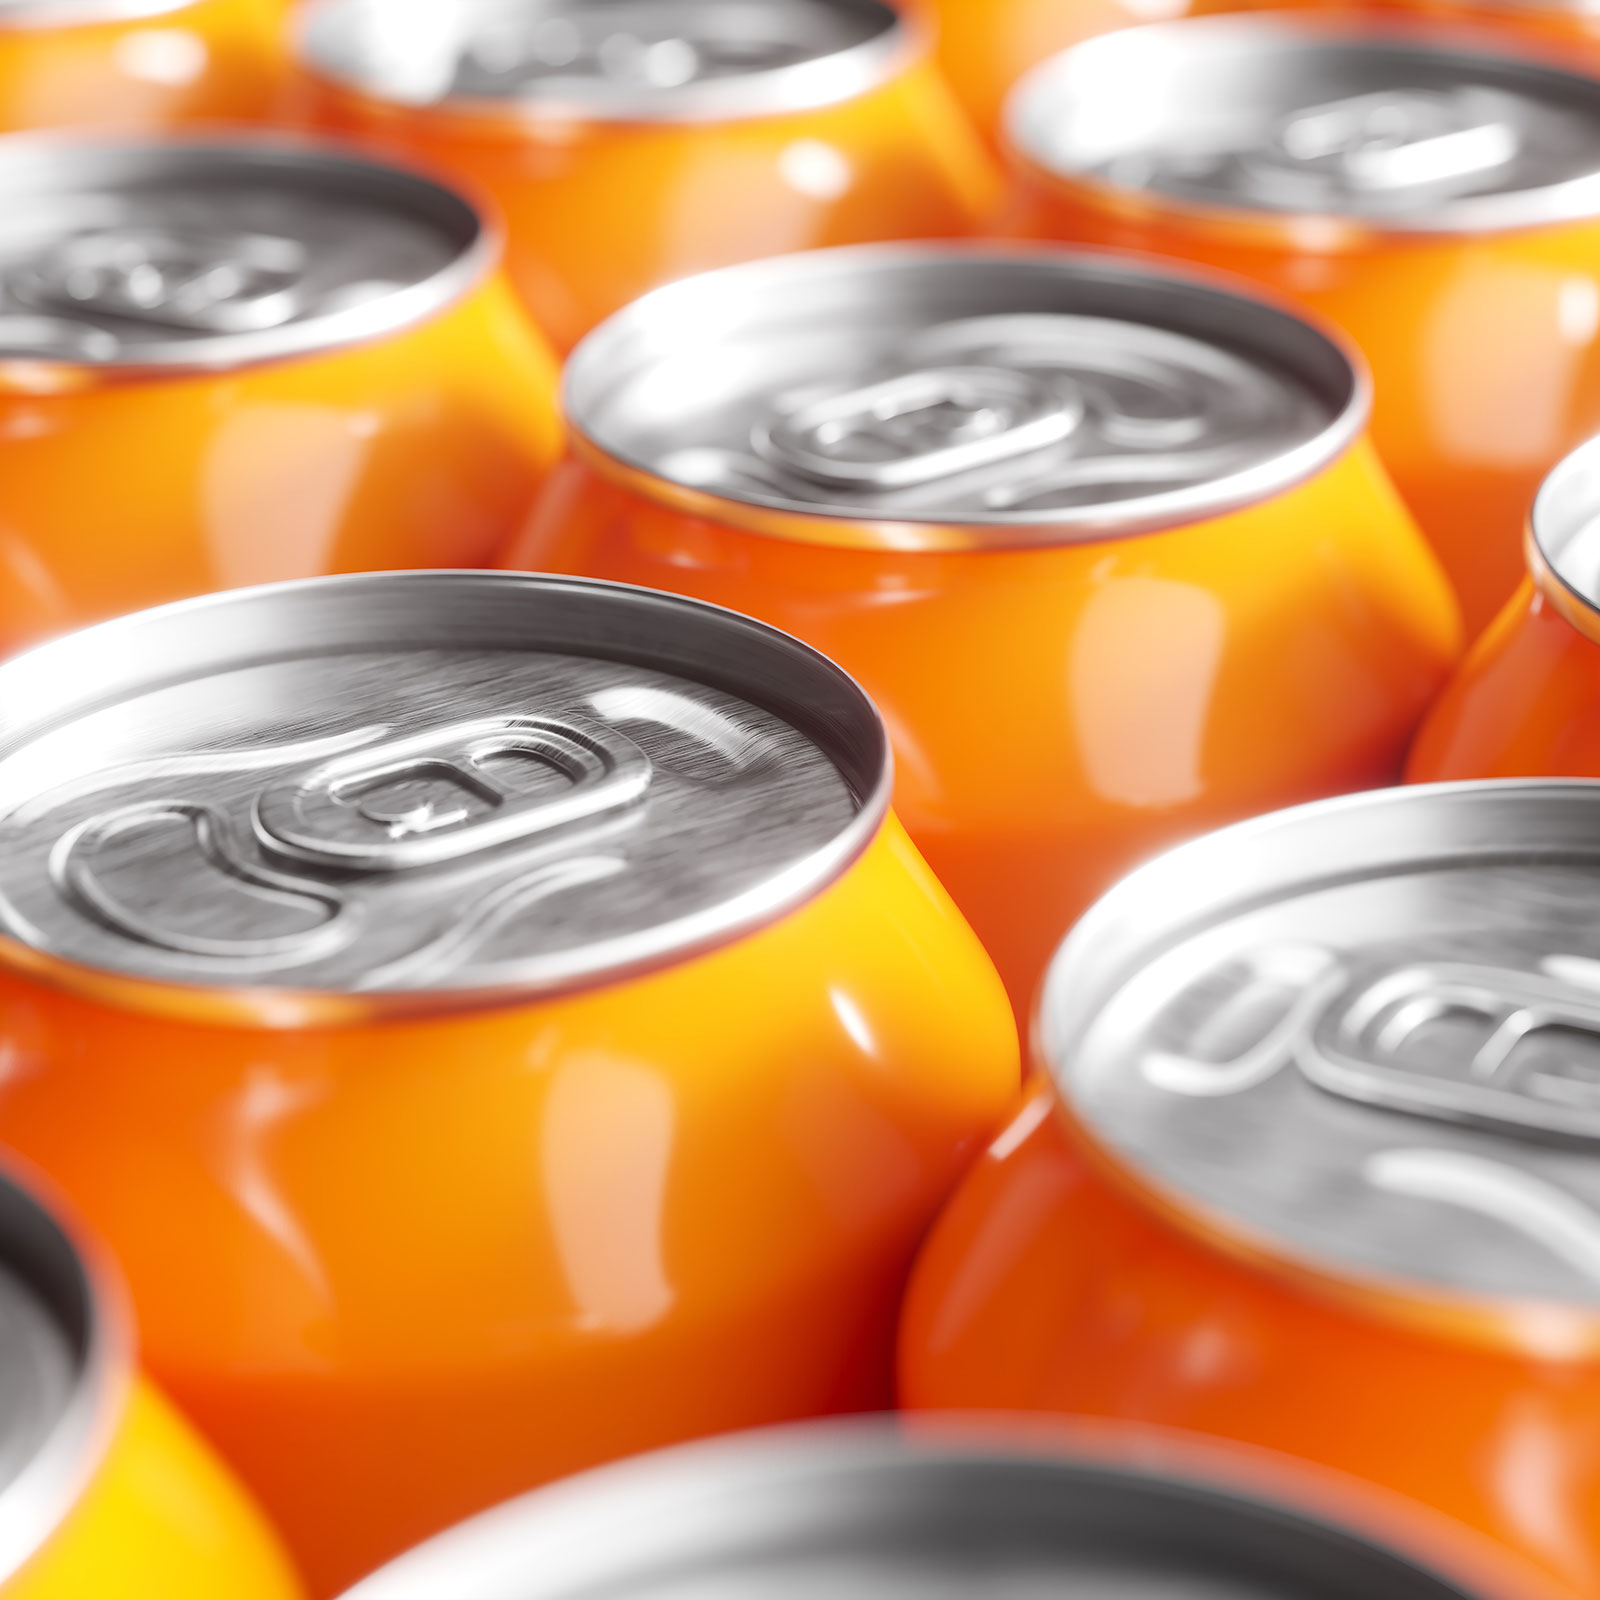 Soda cans processing